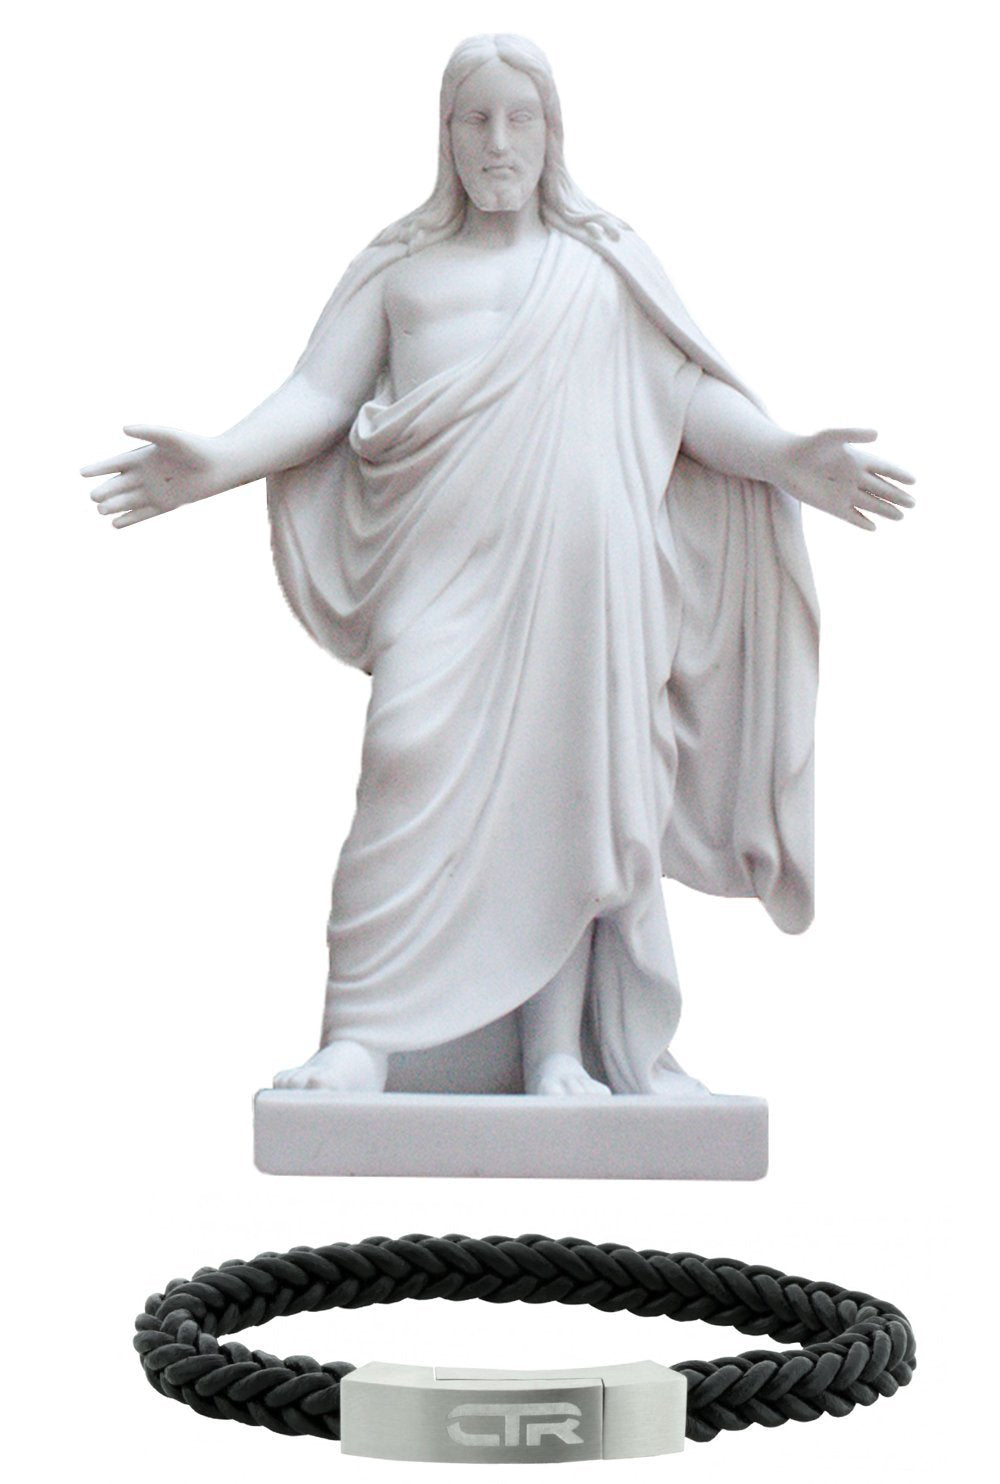 S4 - 10'' Cultured Marble Christus Statue - with L3 Leather and Stainless Steel CTR Bracelet - Magnetic Clasp - Flat Surface - One Moment In Time - Combination